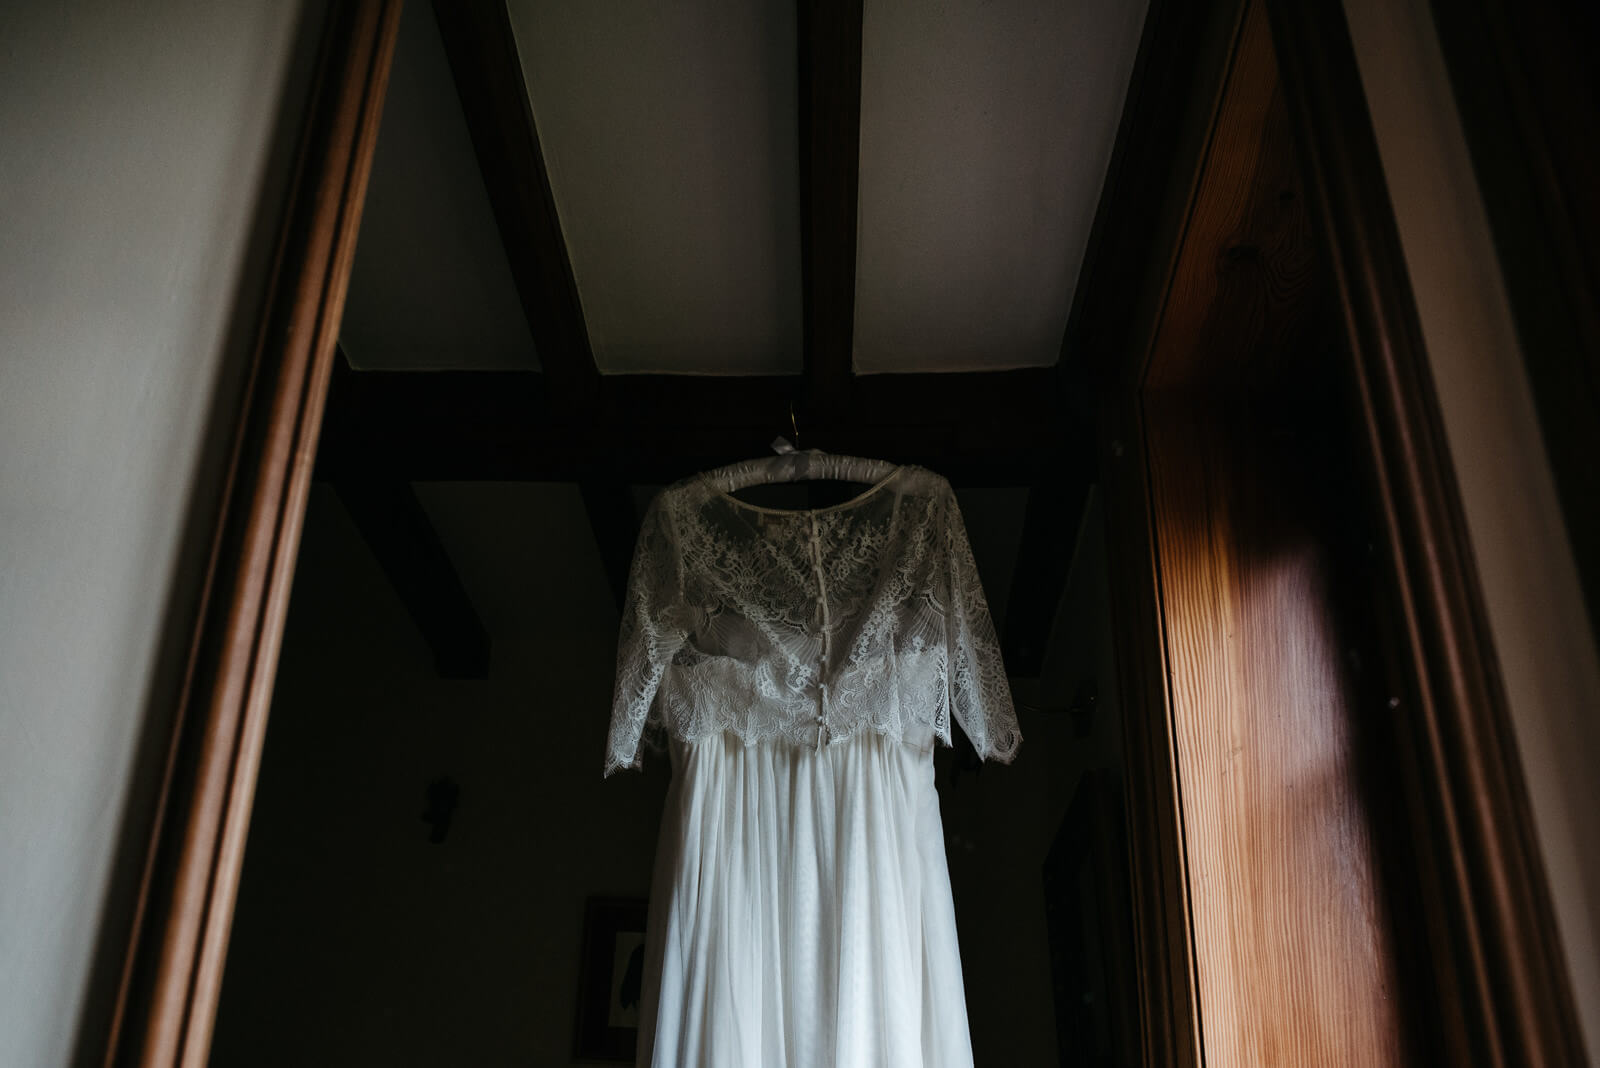 Moody detail photograph of brides lace dress handing in old farm house Shropshire home